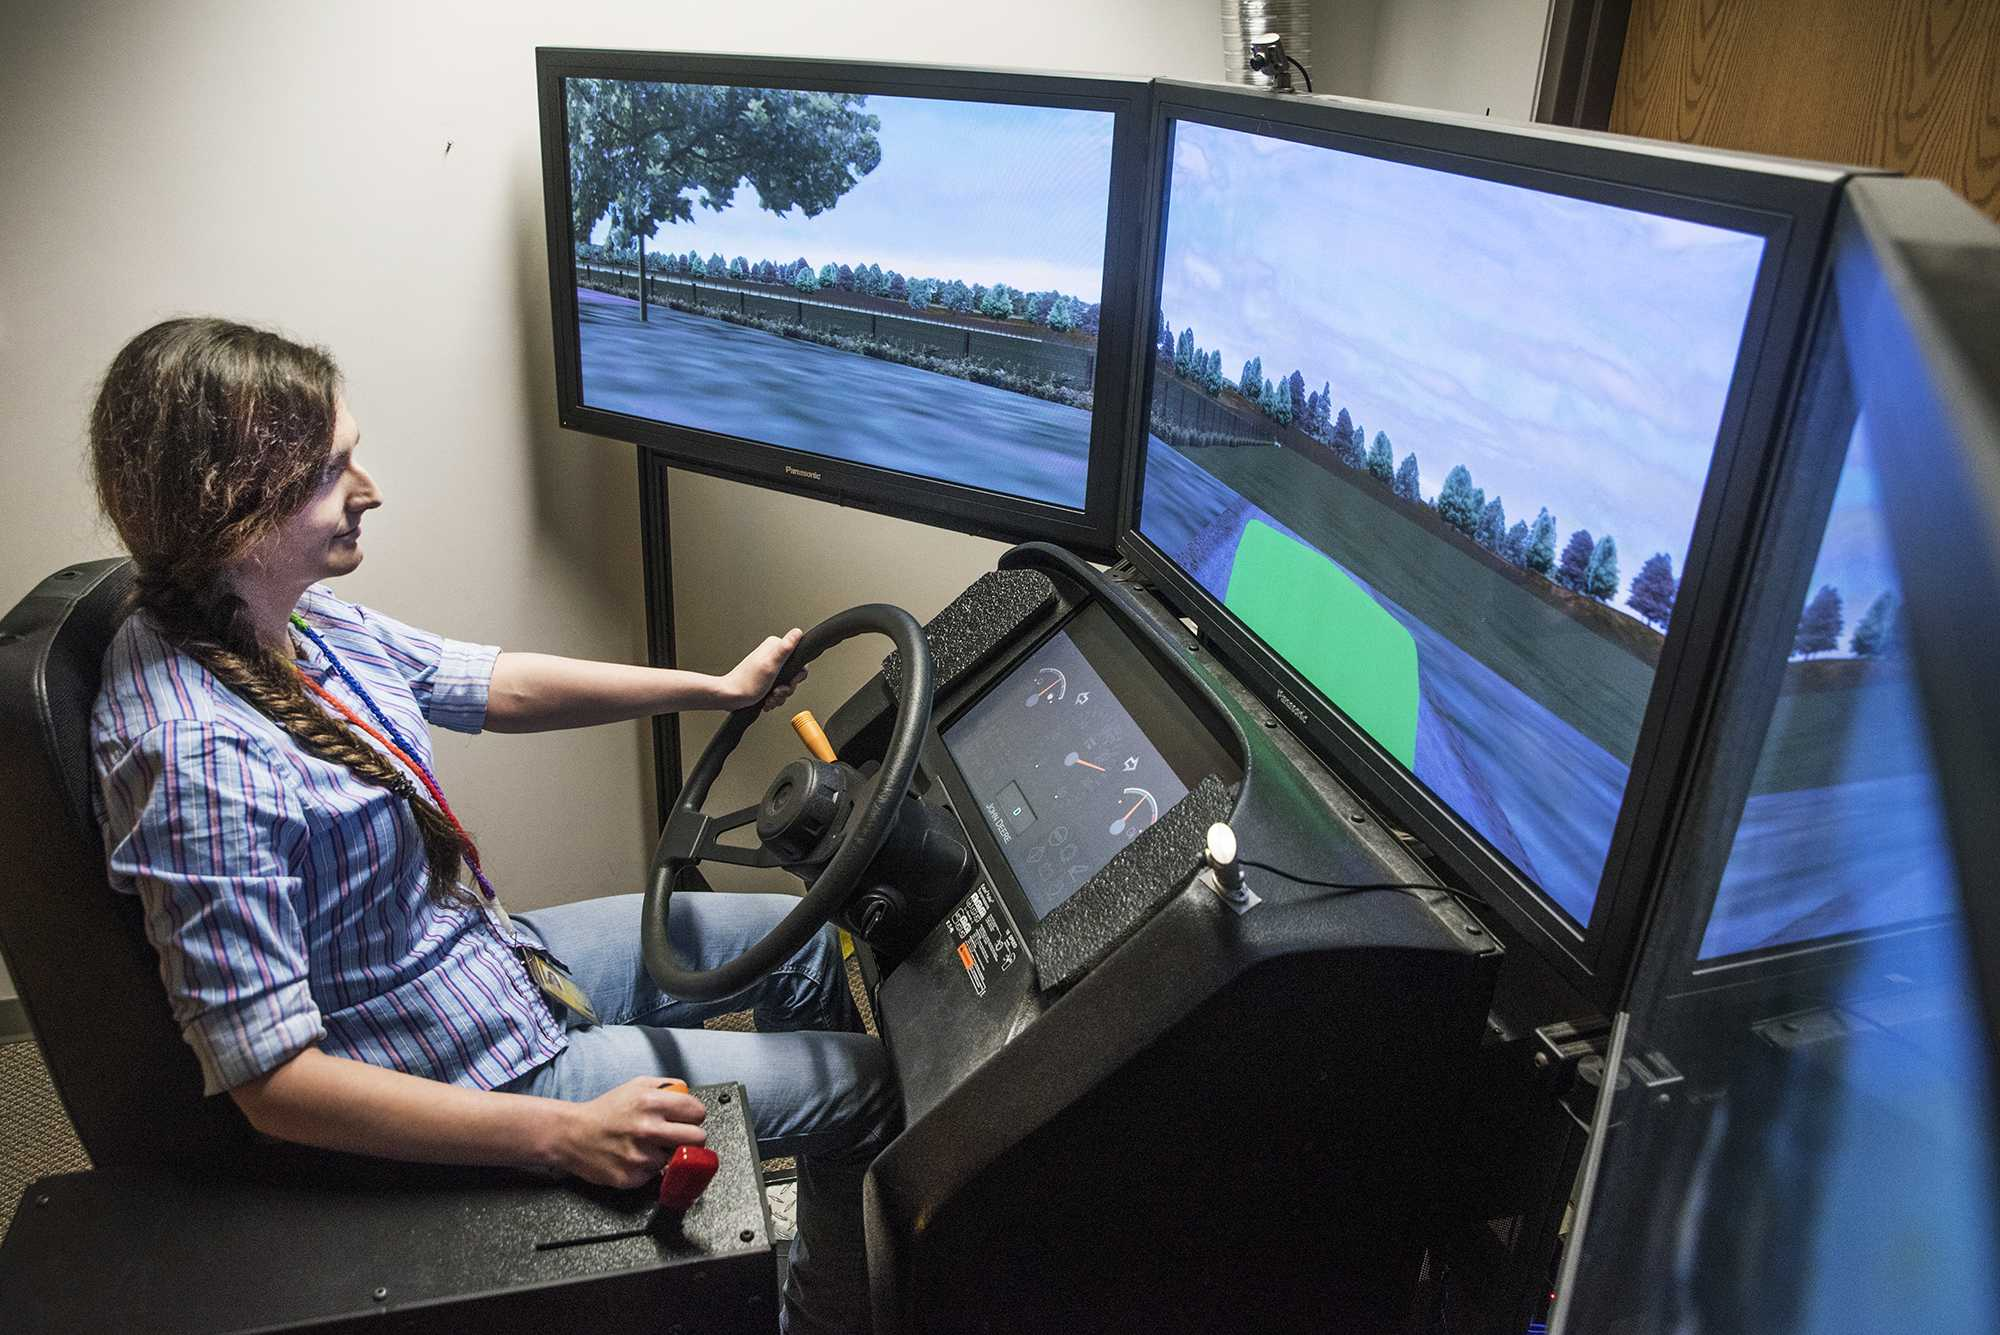 Kayla Faust operates the miniSim, one of only two such driving simulators in the world, at the National Advanced Driving Simulator in Coralville, Iowa. Designed to puts farmers on virtual roads and fields, the miniSim uses steering, pedals, shifters, and a seat from an actual tractor to replicate potentially dangerous driving situations. Faust hopes to find changes that need to be made in farming equipment to avoid accidents. (The Daily Iowan/Olivia Sun)